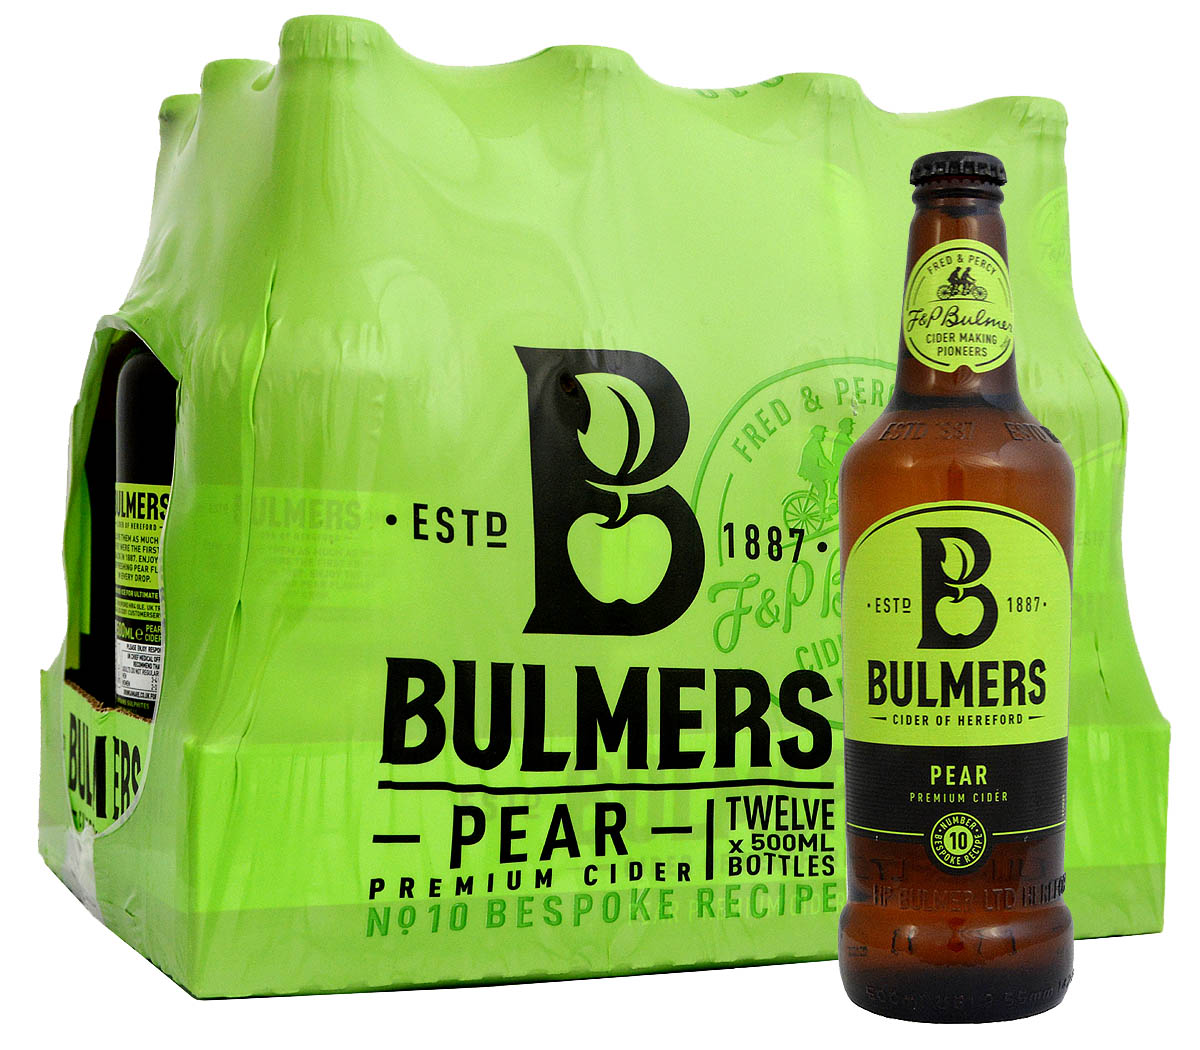 Cider Getränk Bulmers Pear Cider Bottle Pack 12 X 500ml